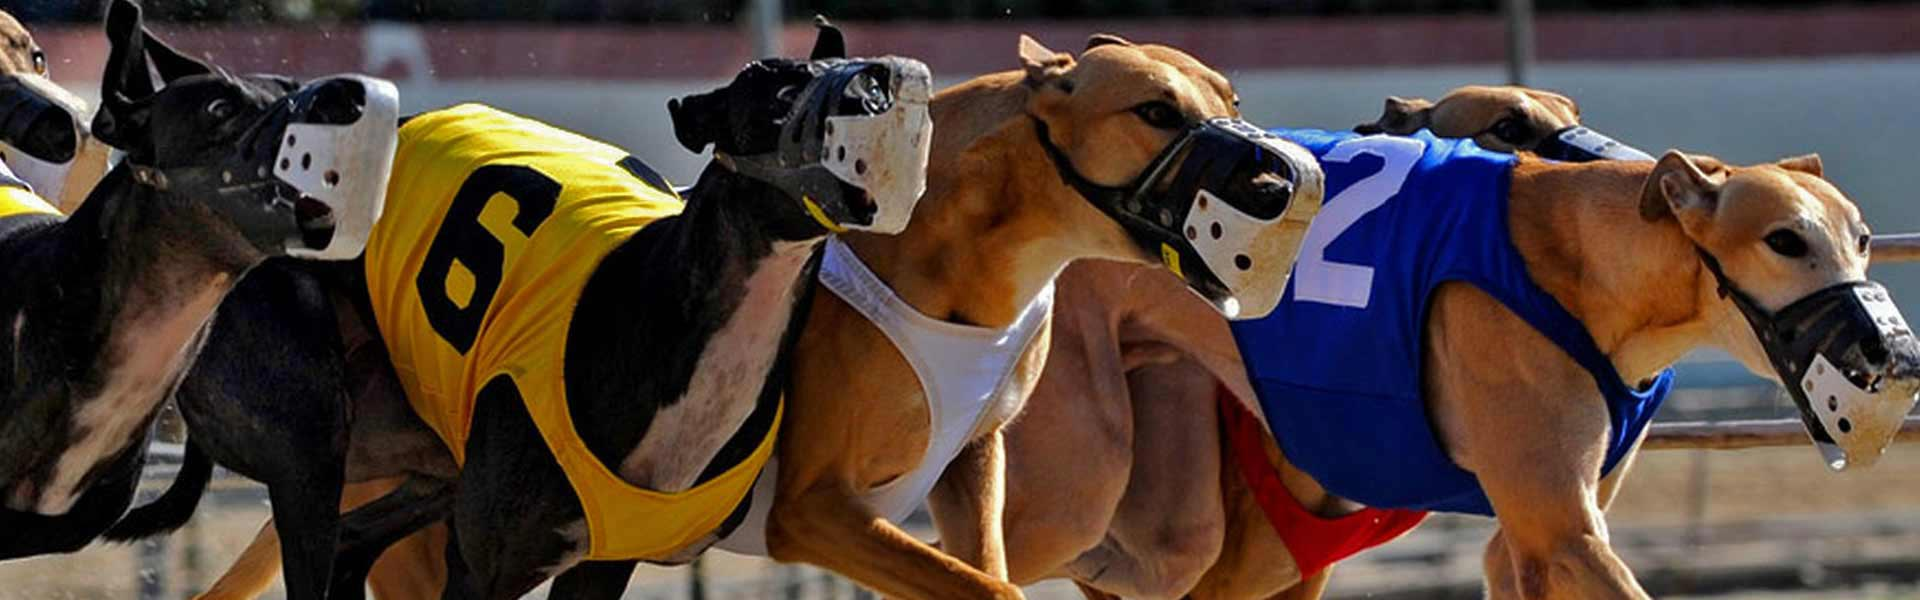 Greyhound racing live betting sports horse betting machine learning book